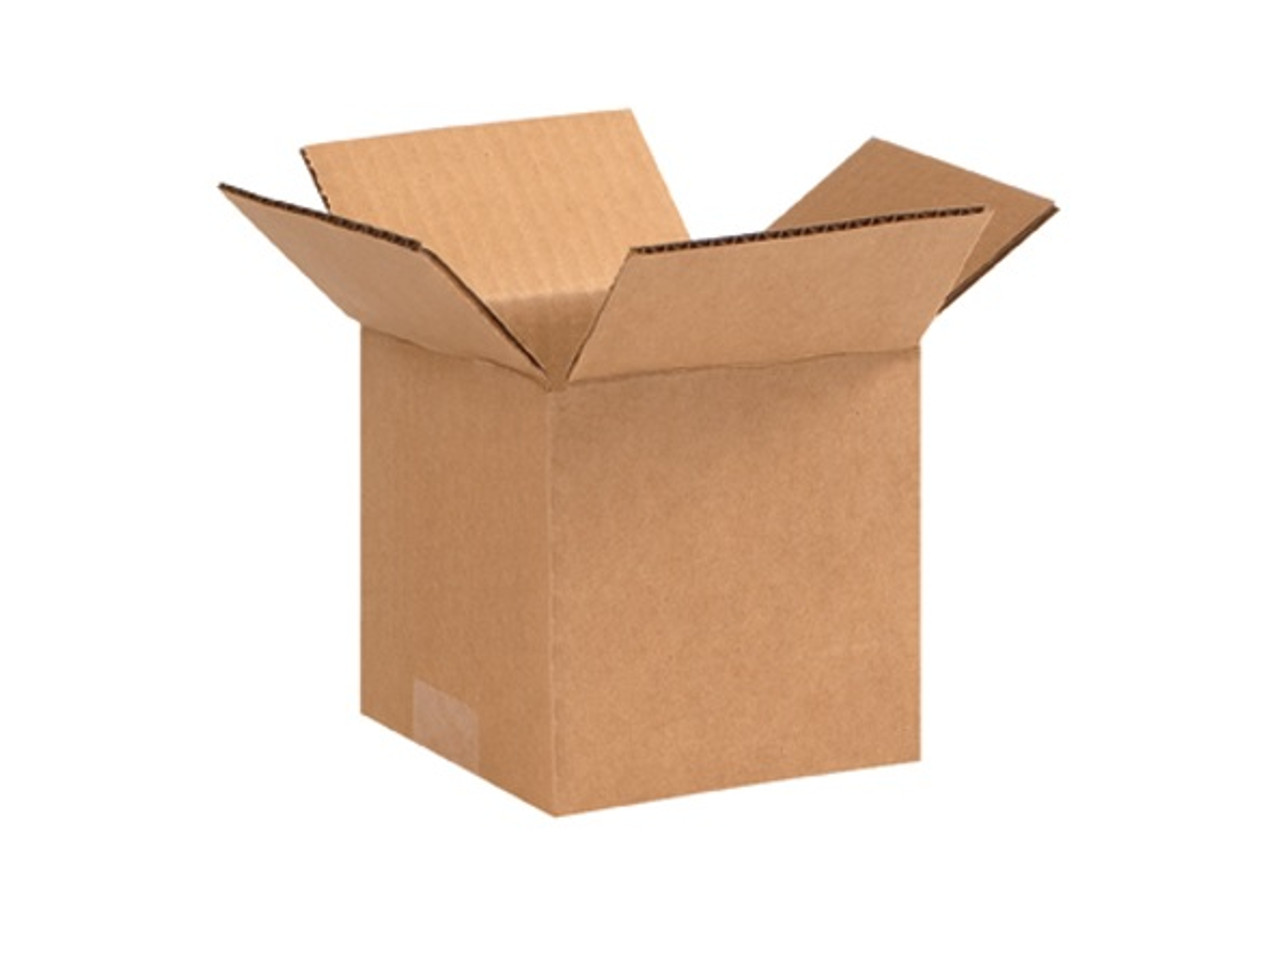 200 5x5x5 Corrugated Cardboard Shipping Mailing Packing Moving Boxes Box Carton